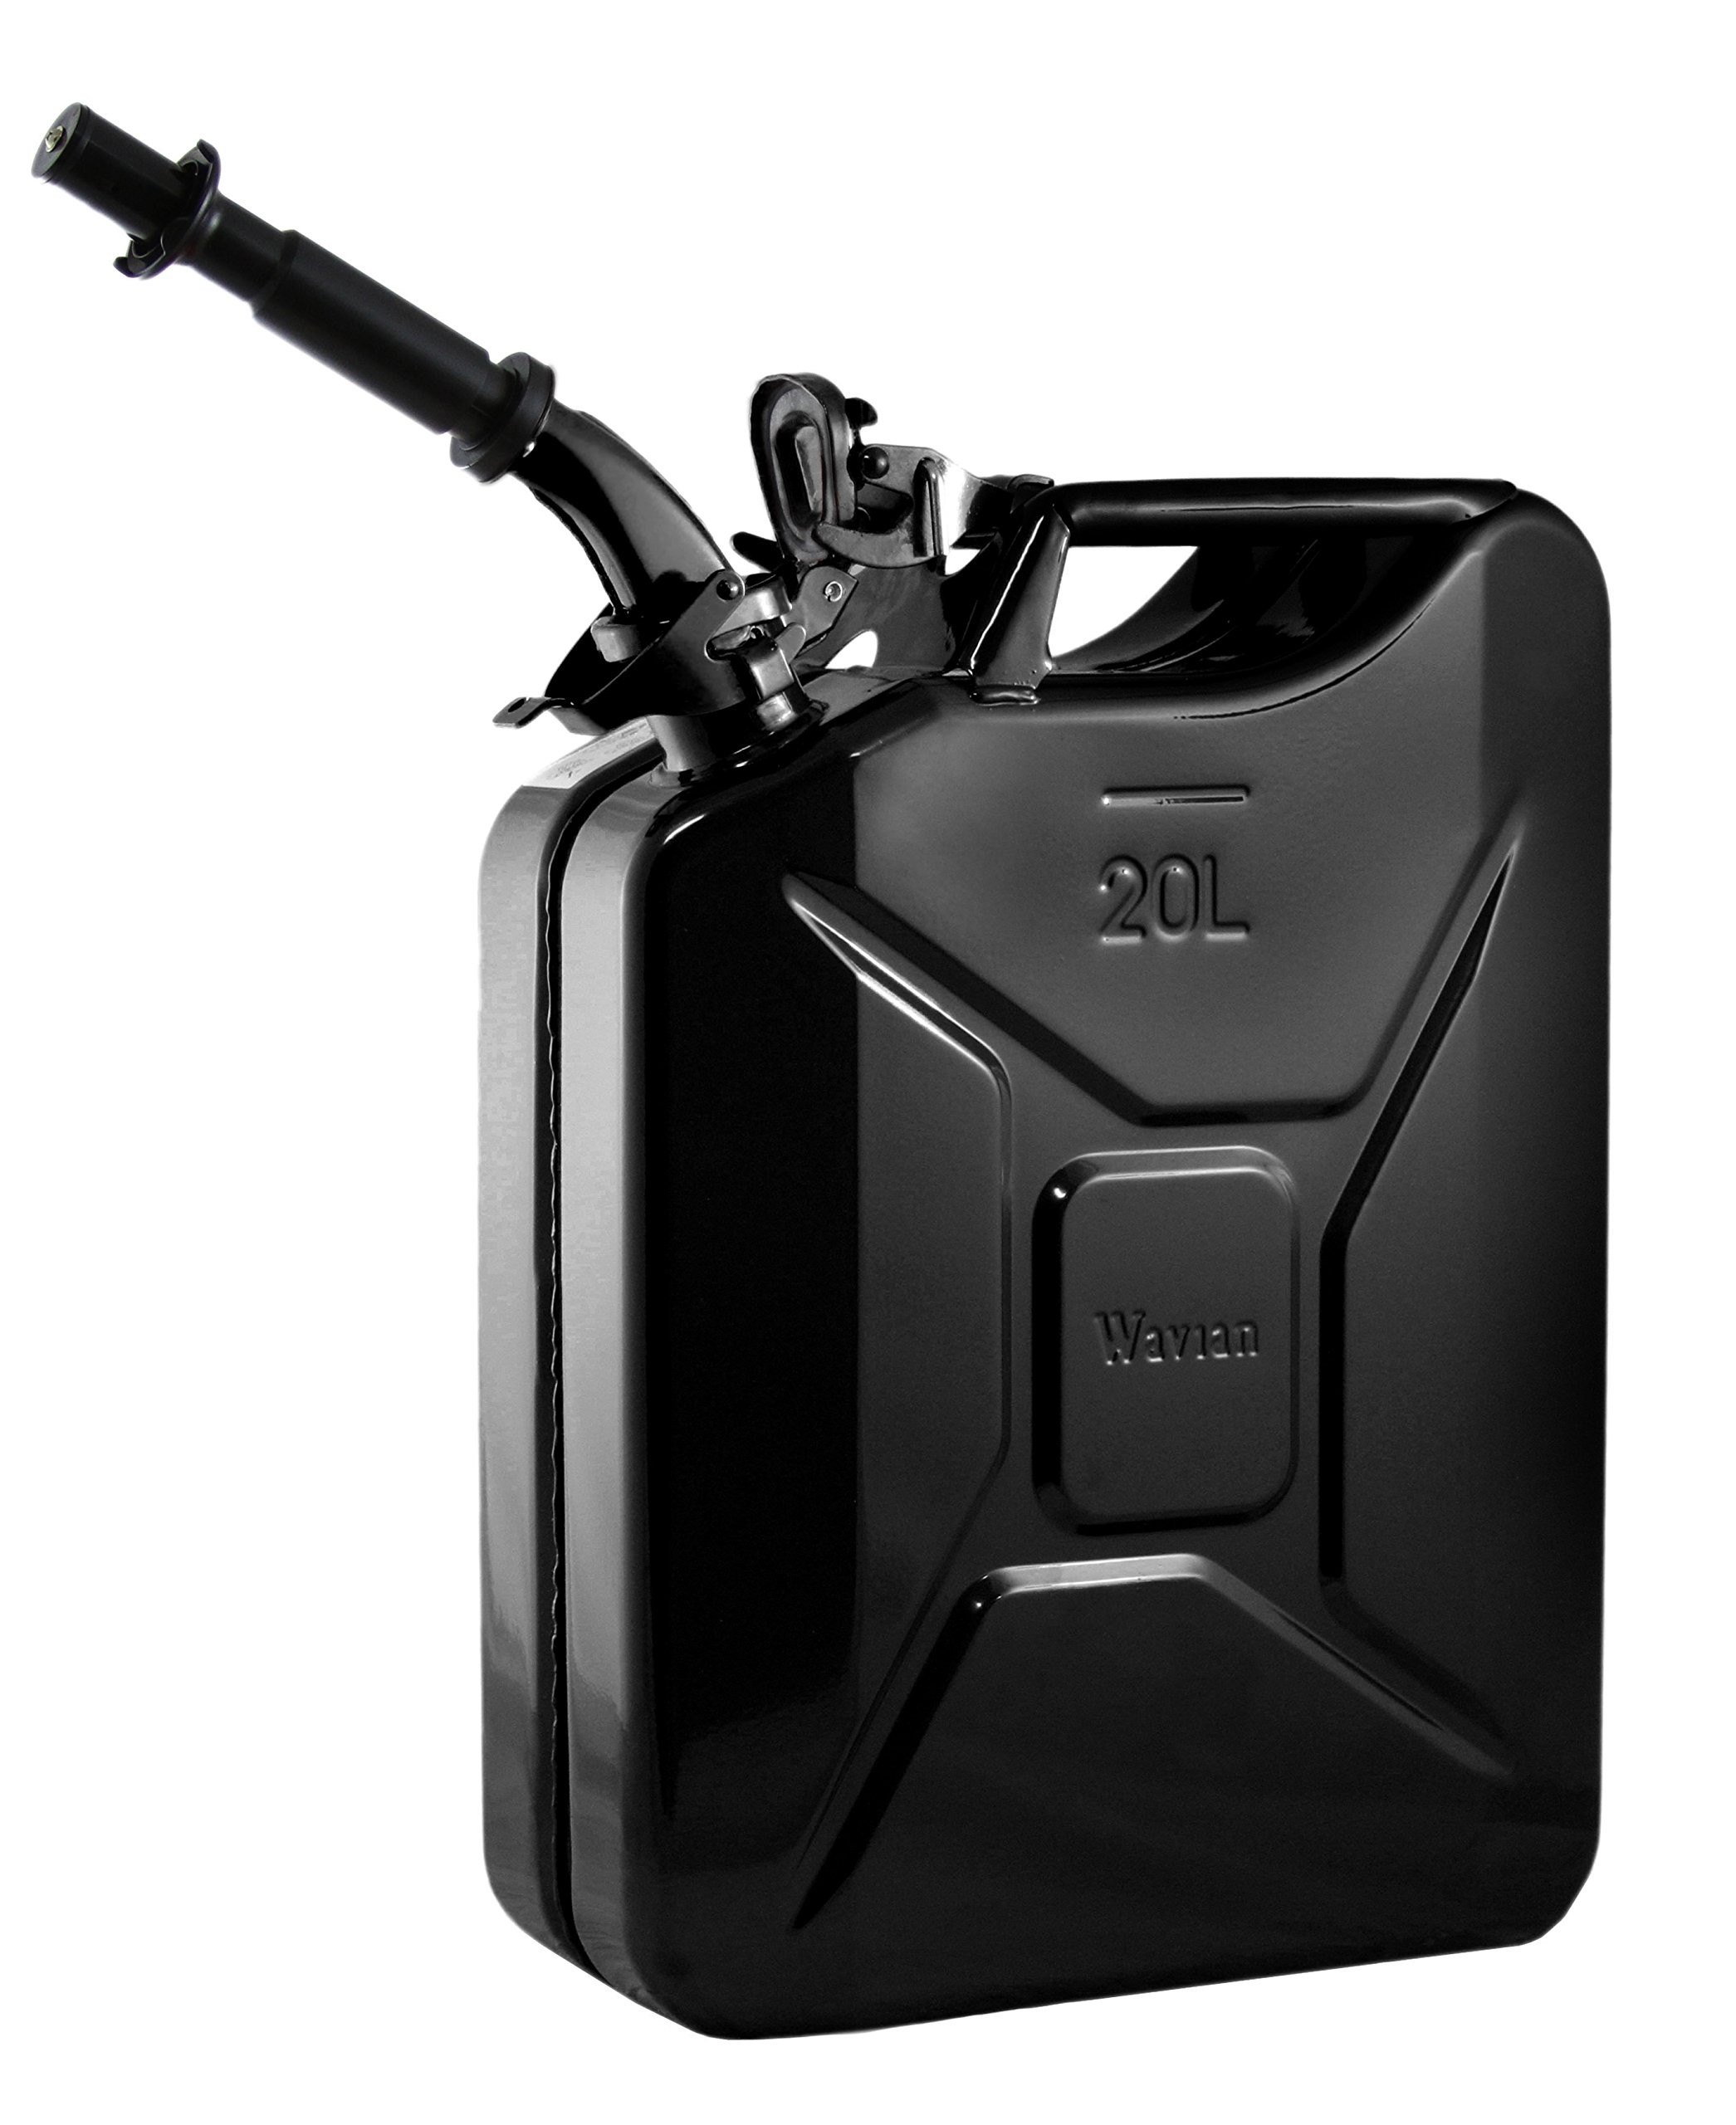 Wavian USA JC0020BVS Authentic NATO Jerry Fuel Can and Spout System Black (20 Litre) by Wavian USA